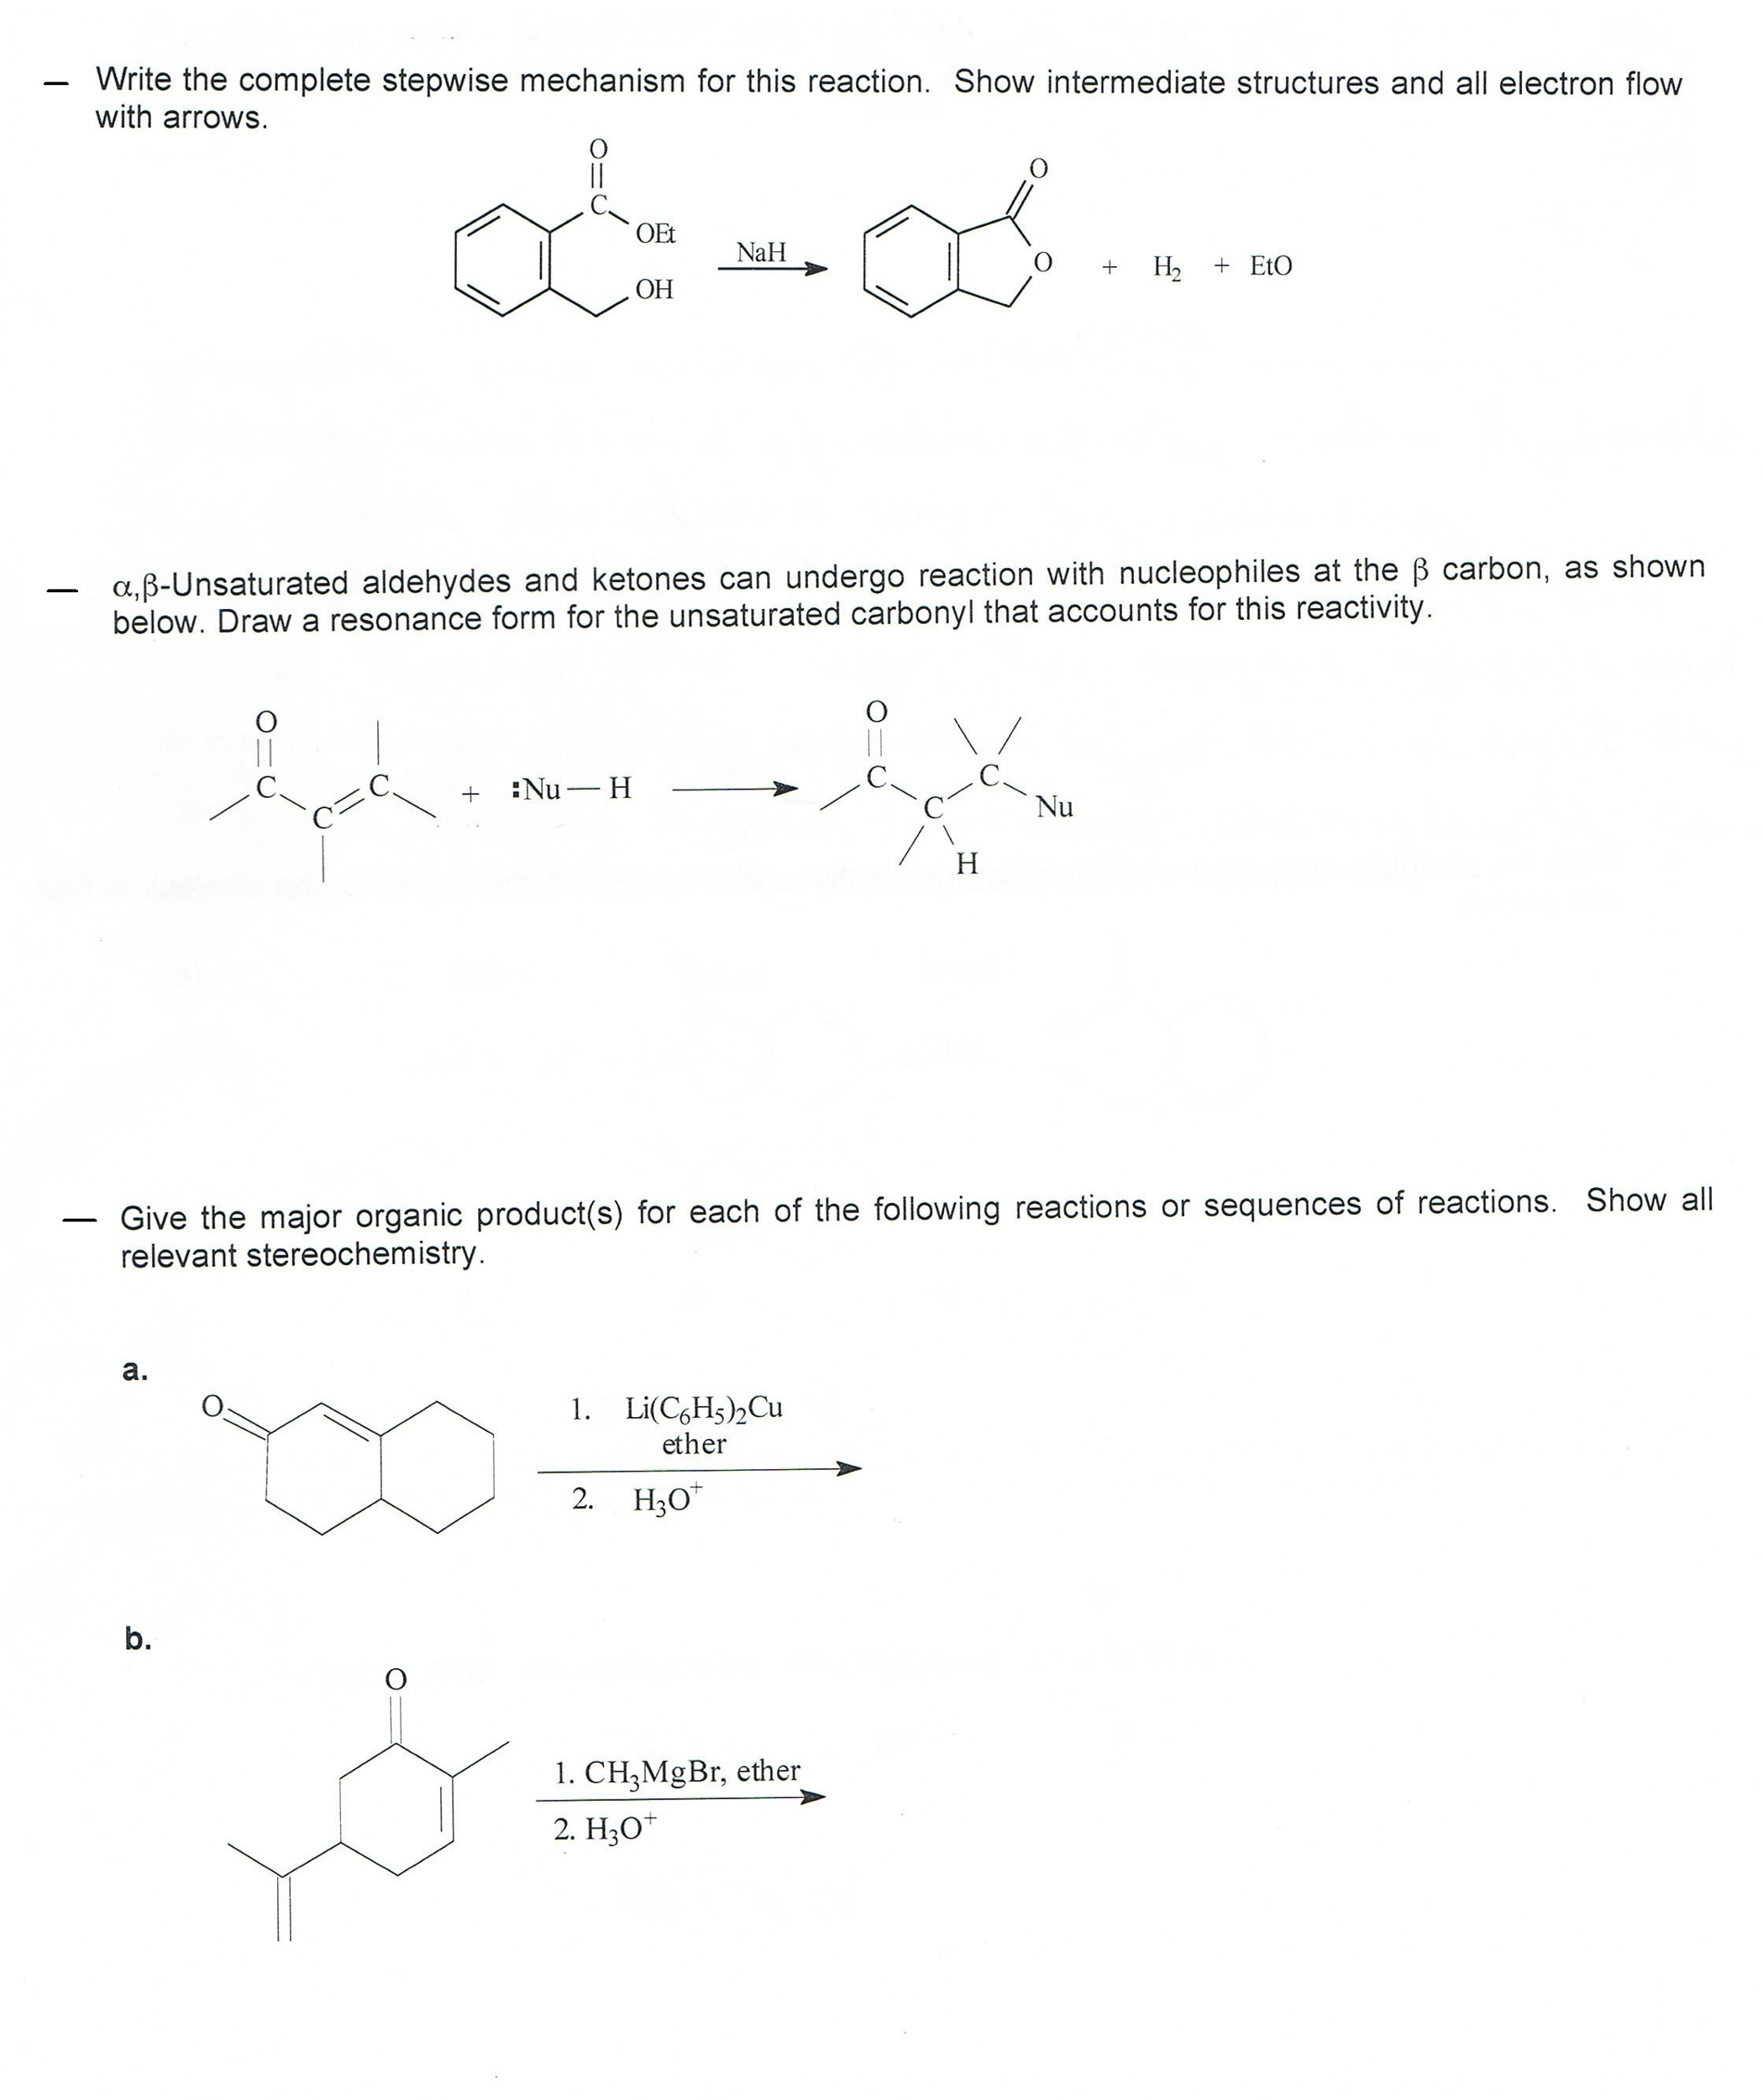 write a mechanism for the following reaction show